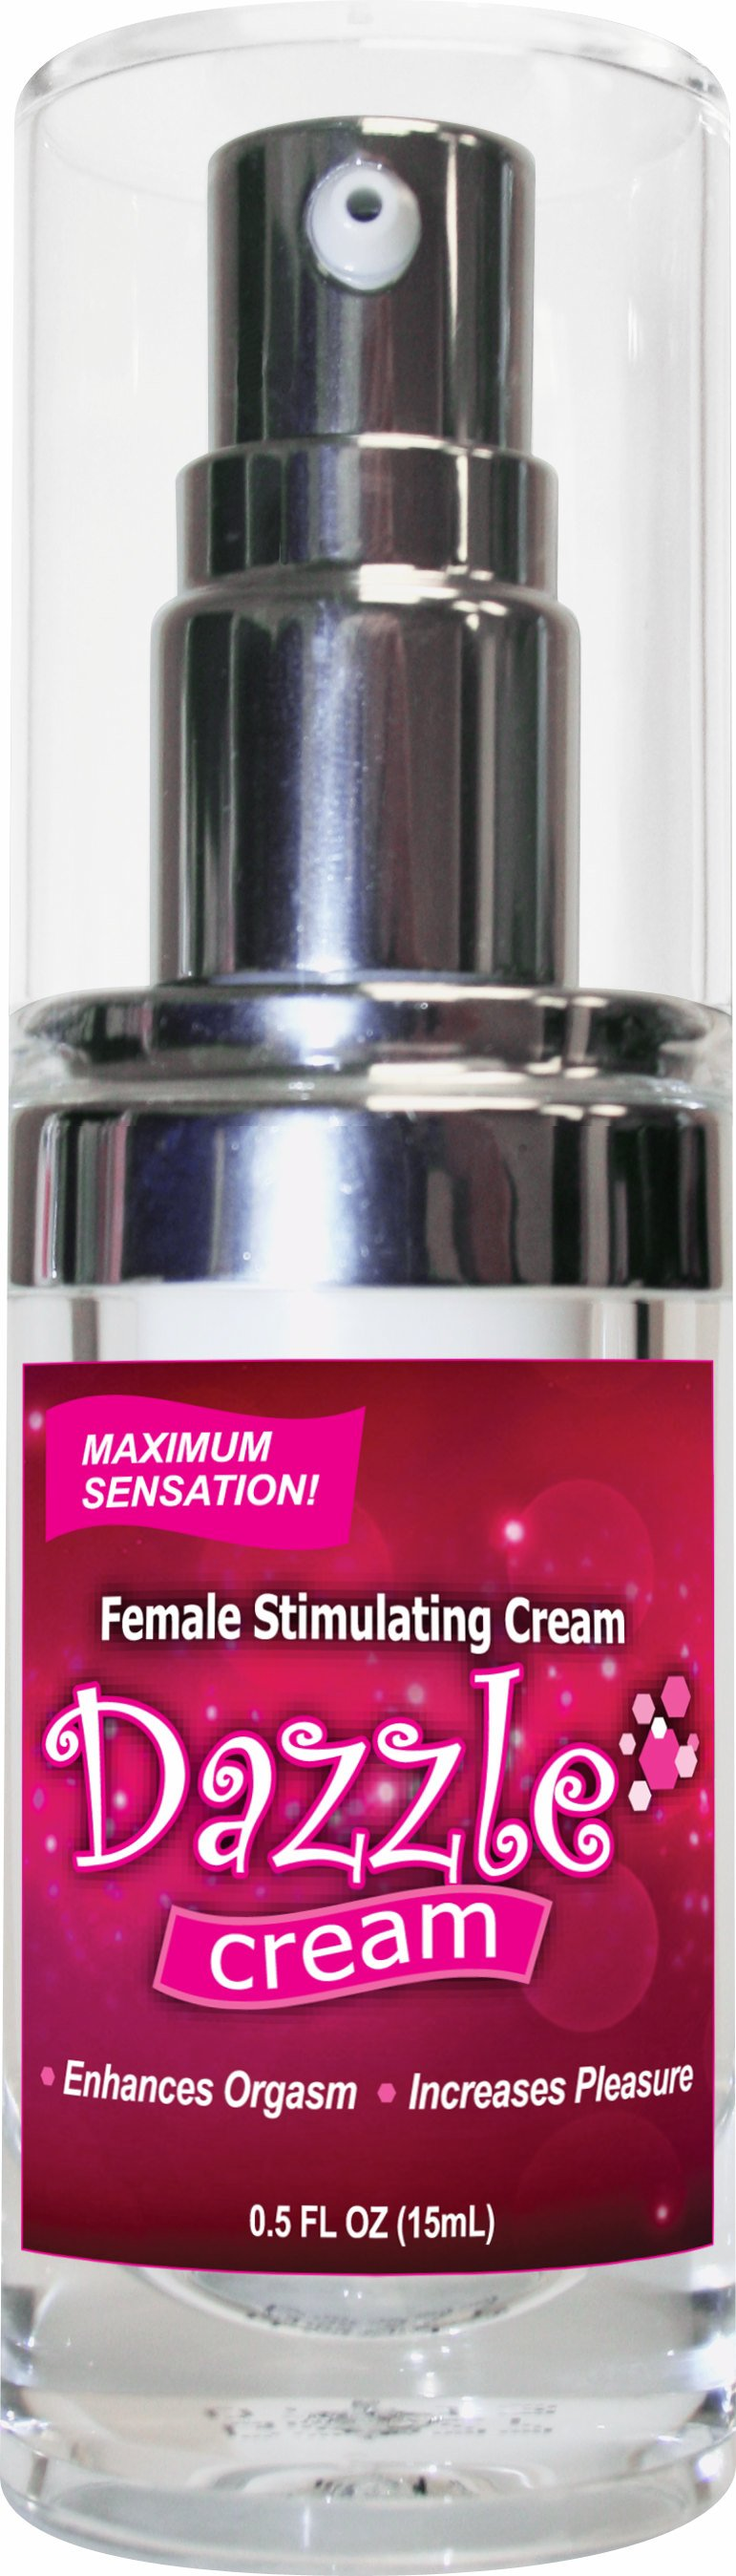 Dazzle Cream 5 Oz